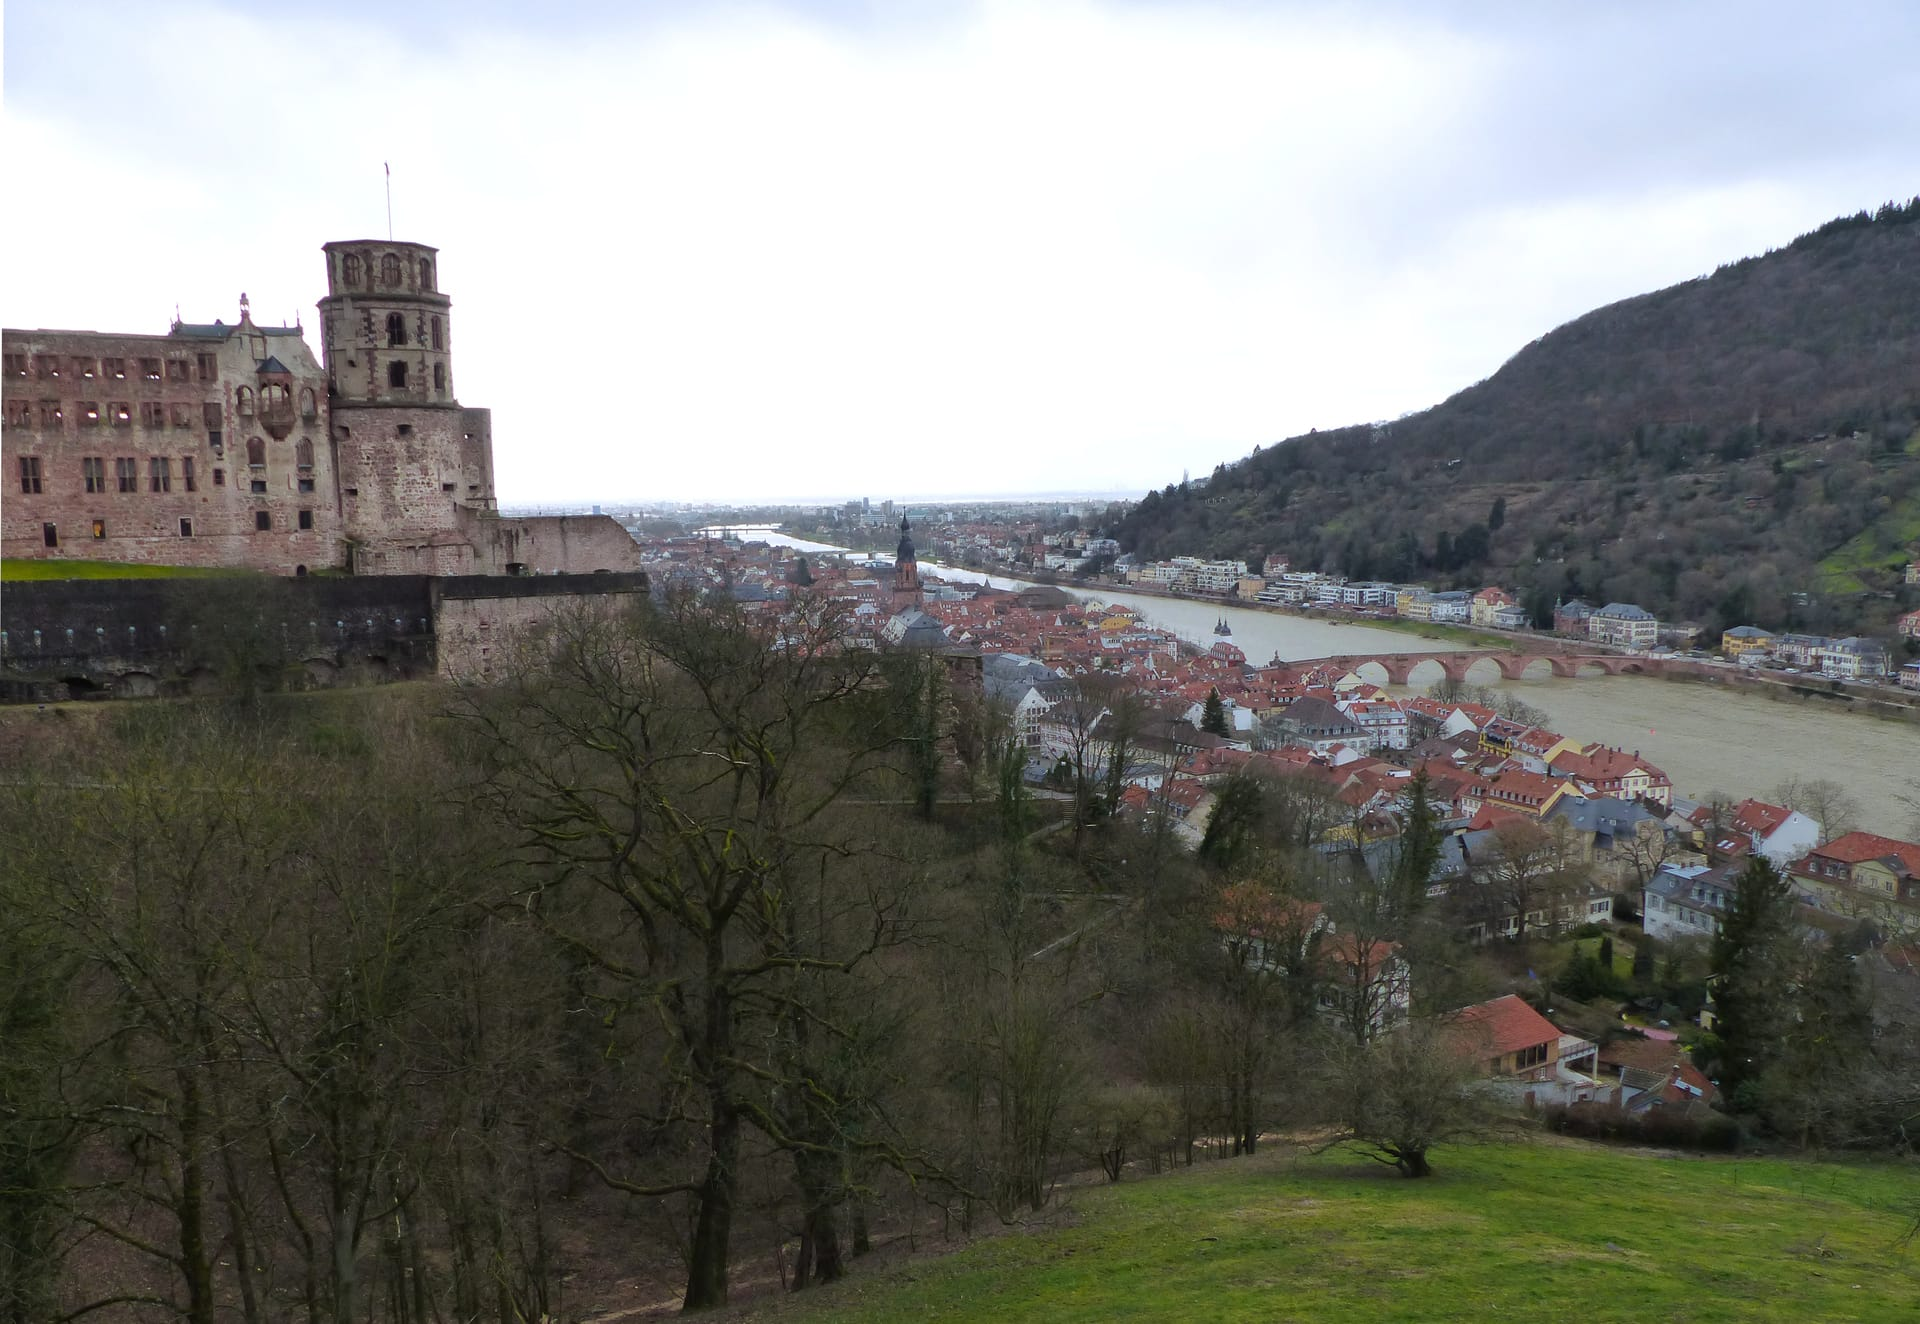 view from Castle Garden